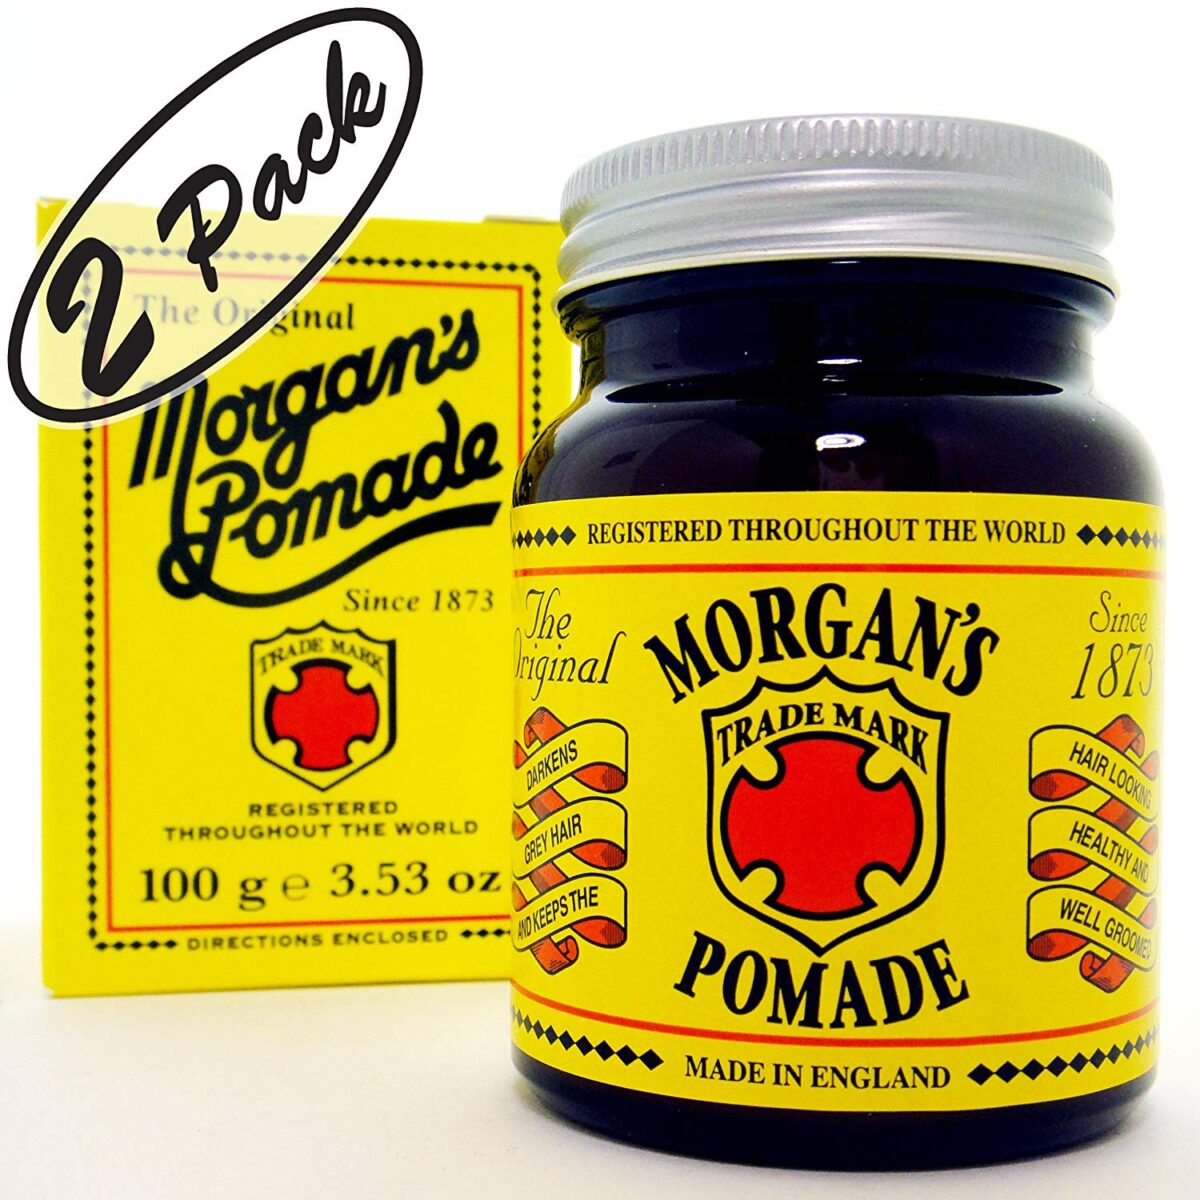 """MORGAN'S POMADE """"The Original"""" 3.53 oz (100 g) –With this great offer you get TWO (2) bottles of The Original MORGAN'S POMADE of 3.53 oz (100 g) EACH."""